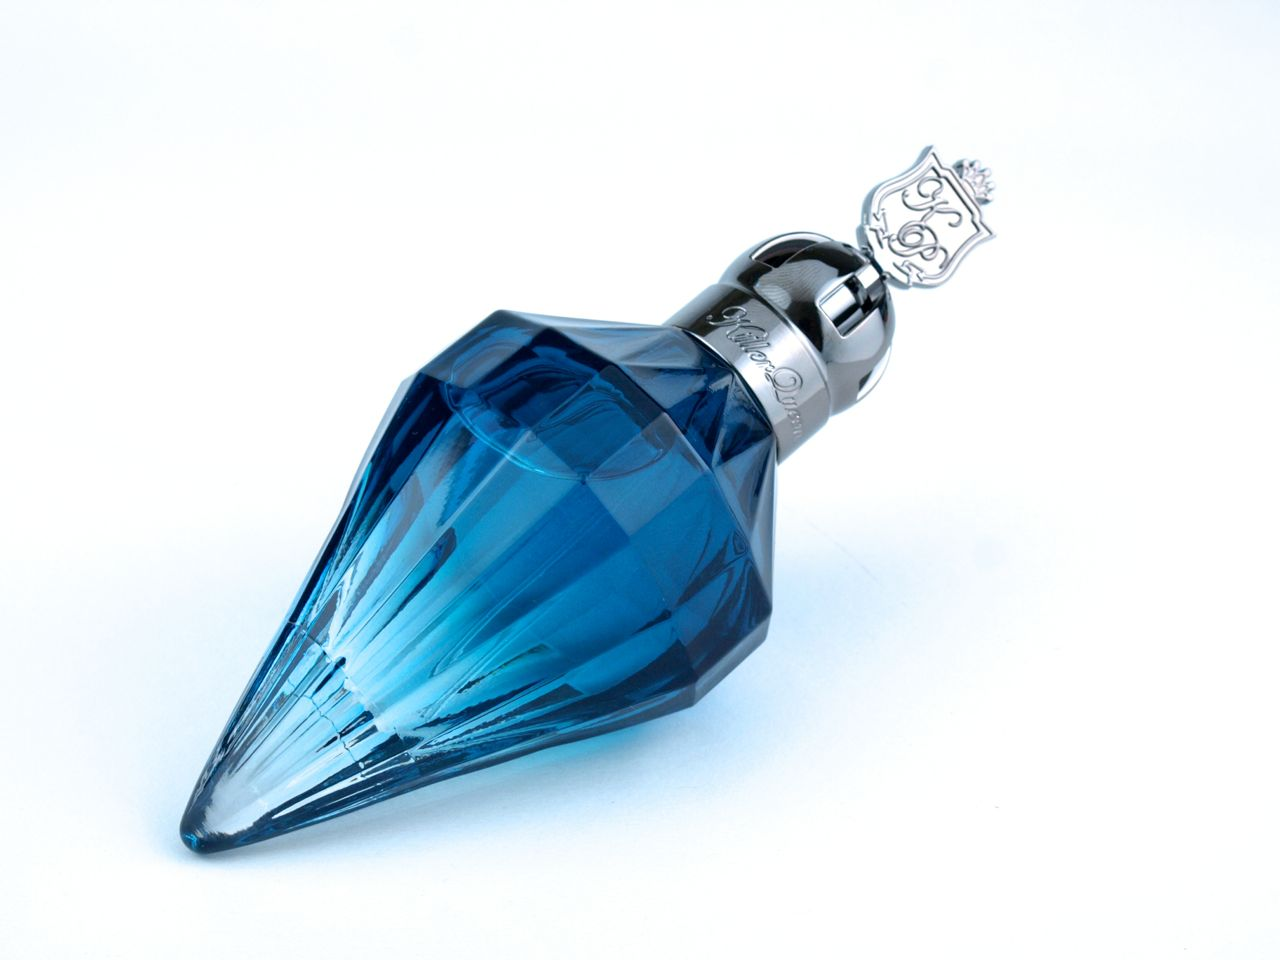 Katy Perry Killer Queen's Royal Revolution Eau de Parfum: Review